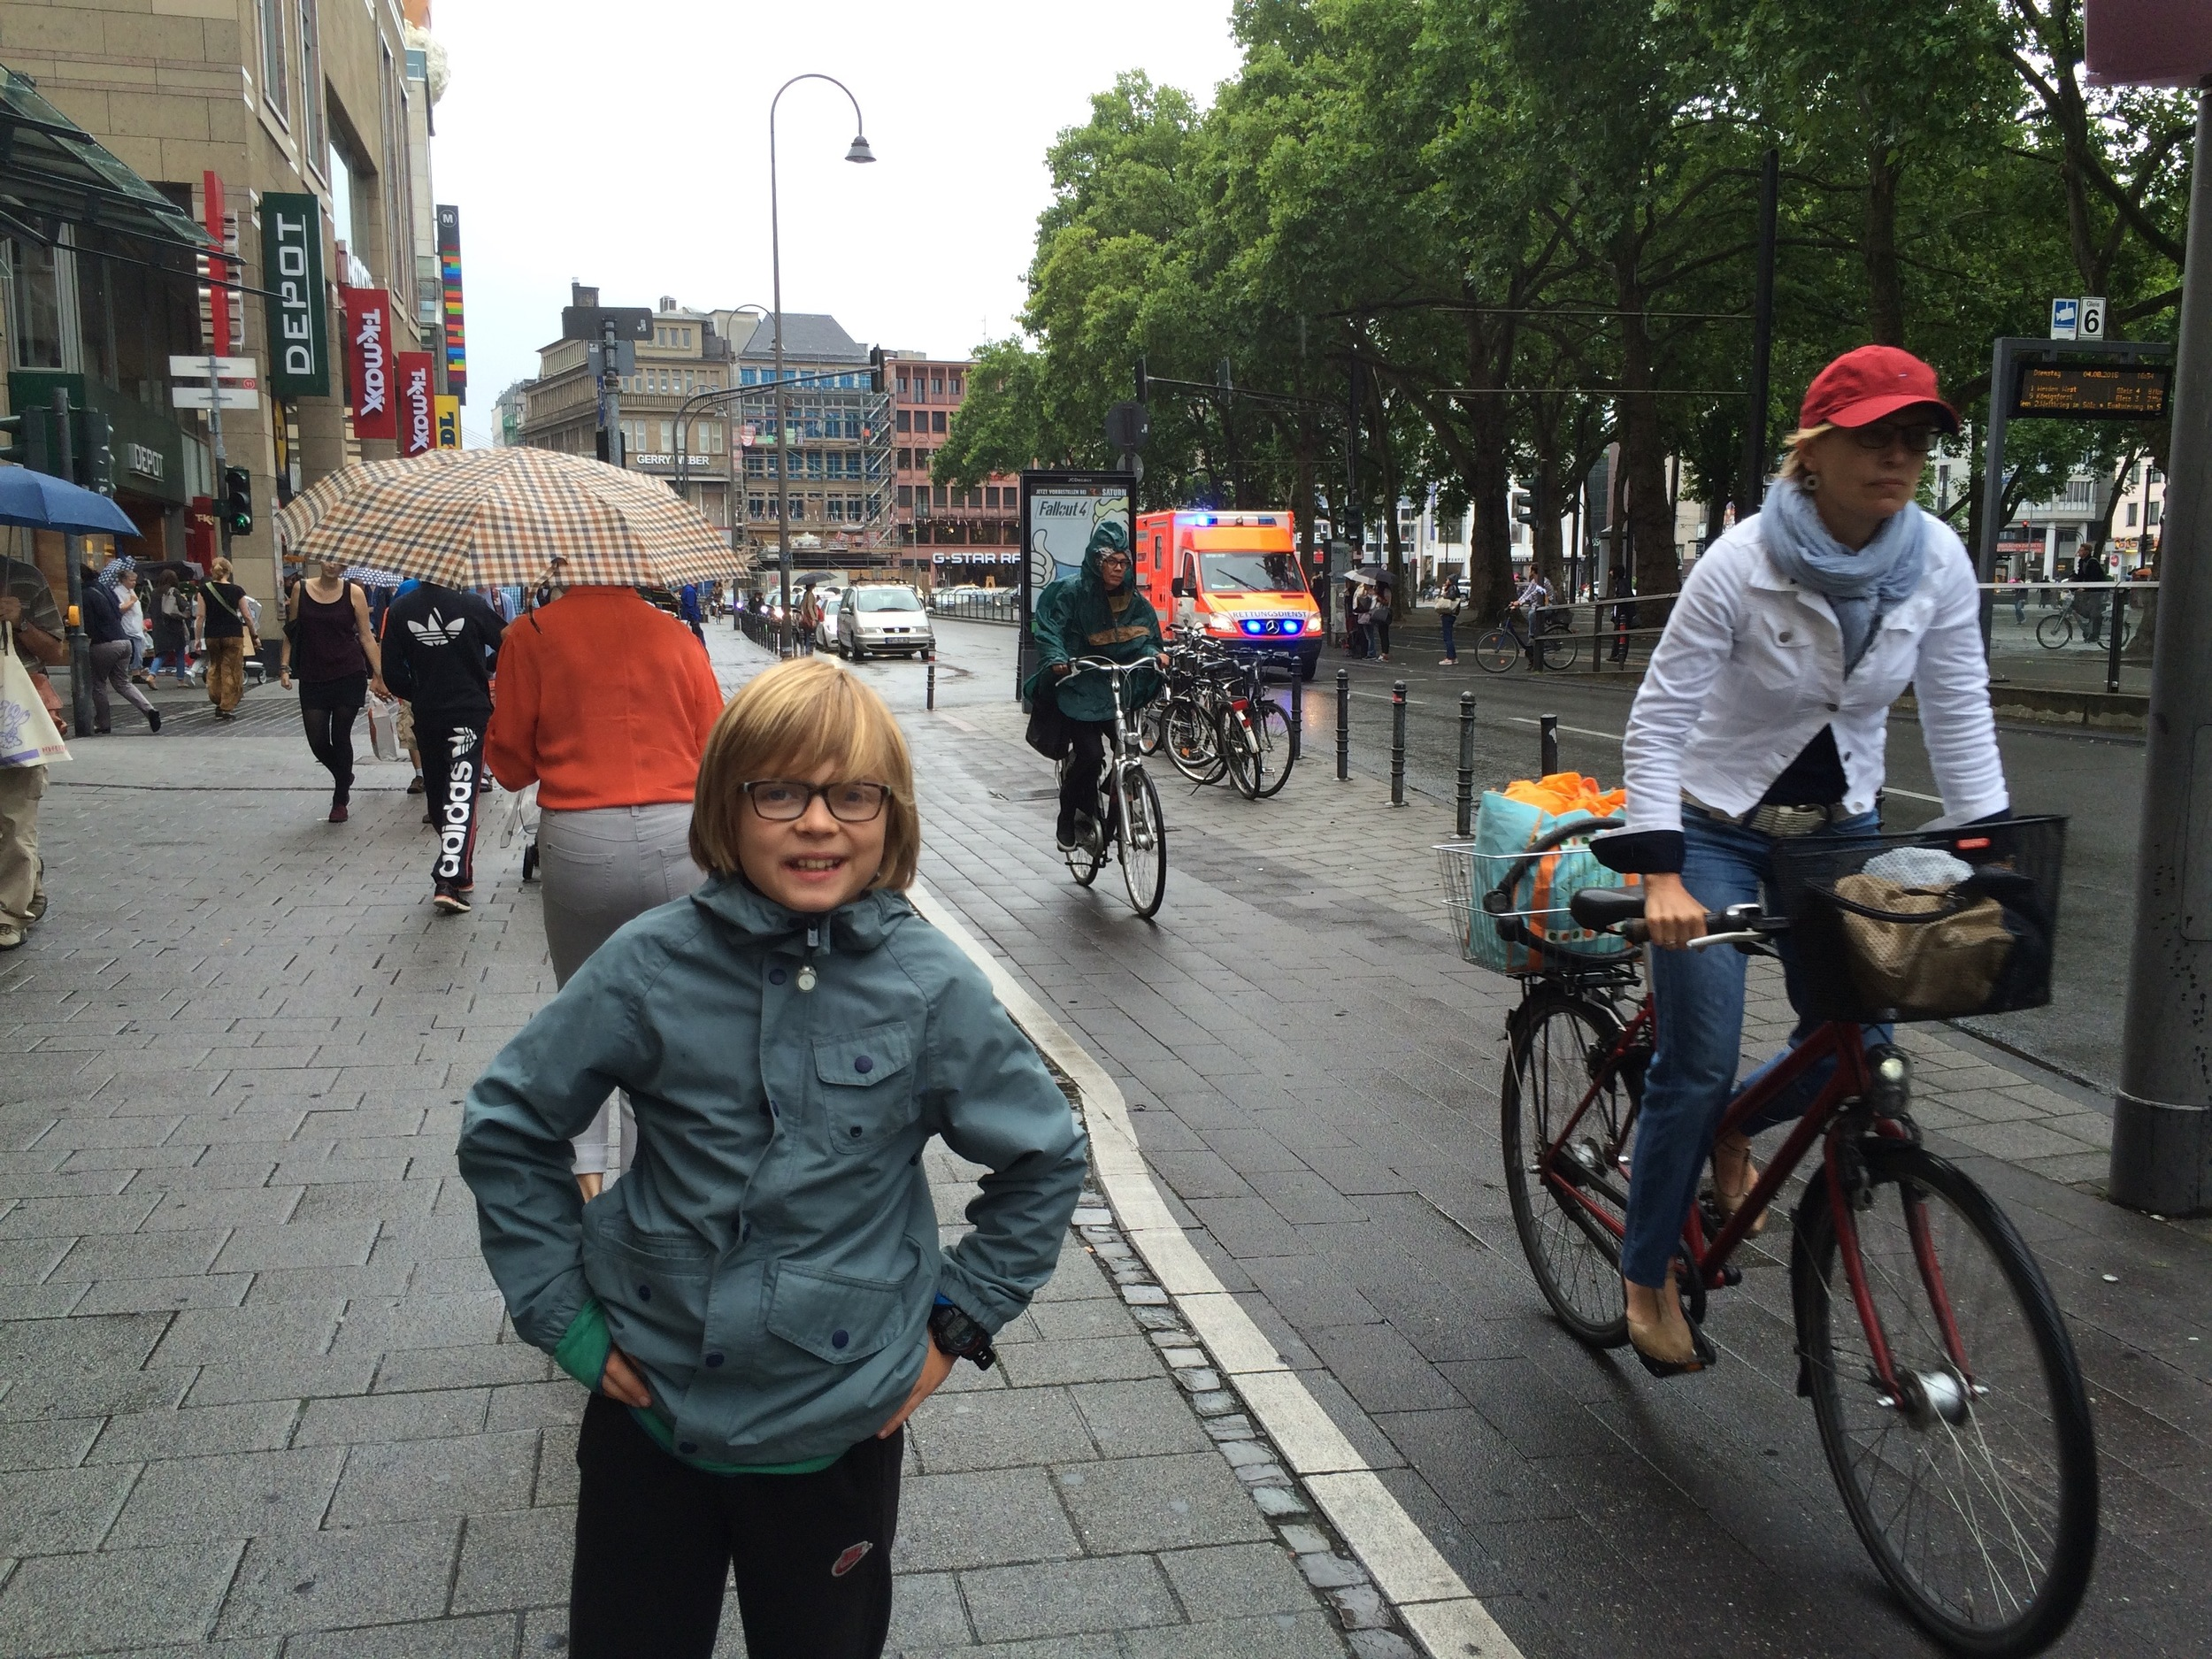 Elliot loved Cologne - and its protected bike lanes